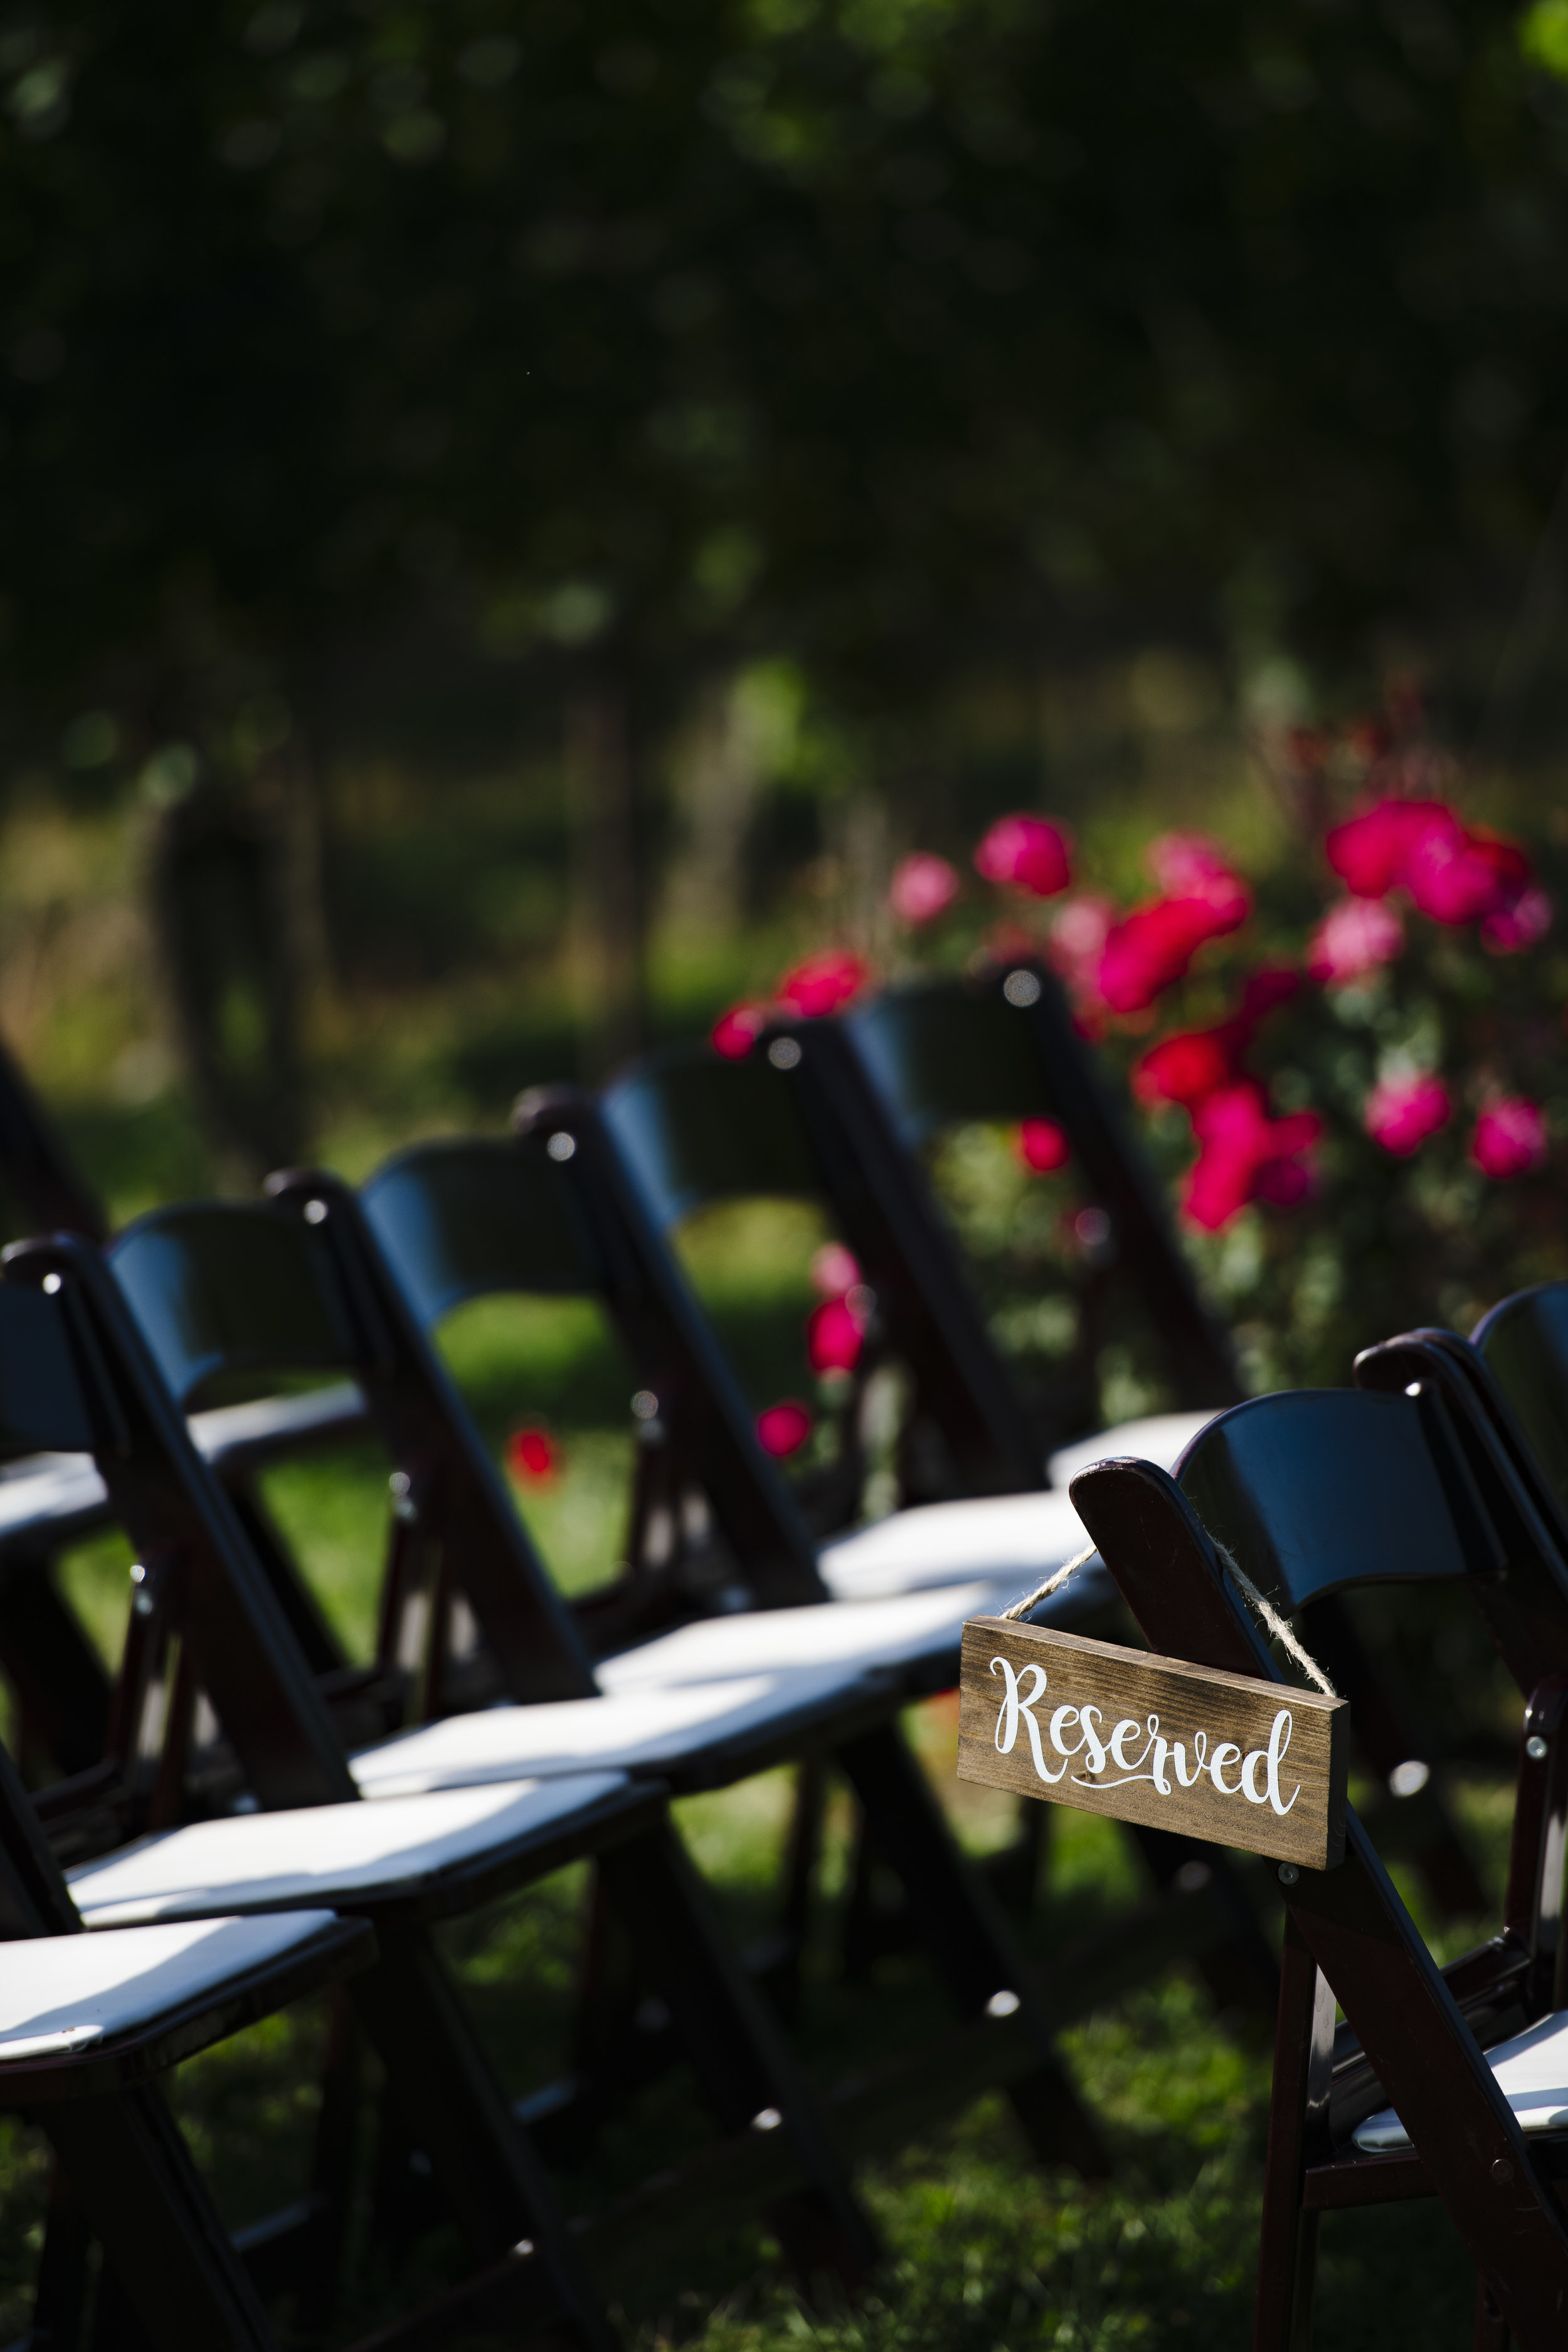 Wood garden folding chairs and red roses for a ceremony at Jonathan Edwards winery - Pearl Weddings & Events